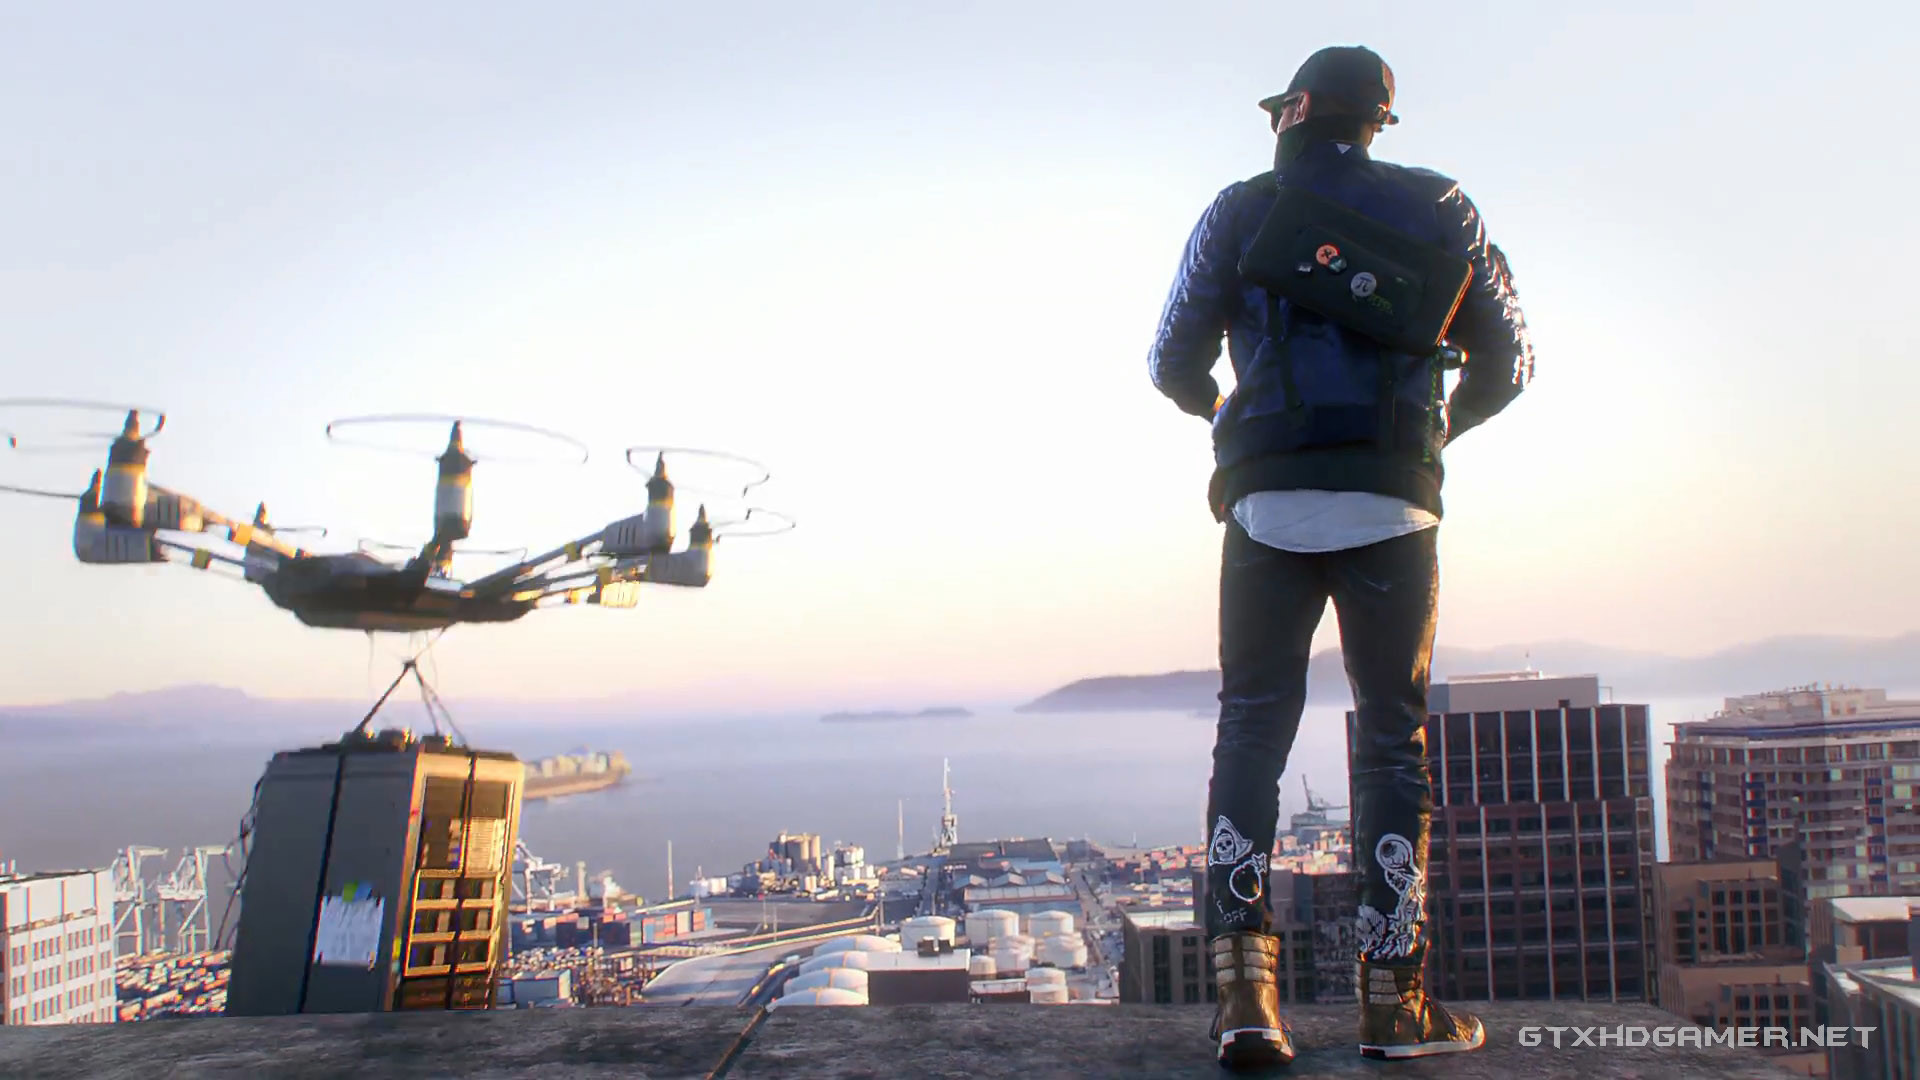 Watch Dogs 2 Wallpaper 1920x1080: Watch Dogs 2 Wallpapers (79+ Background Pictures